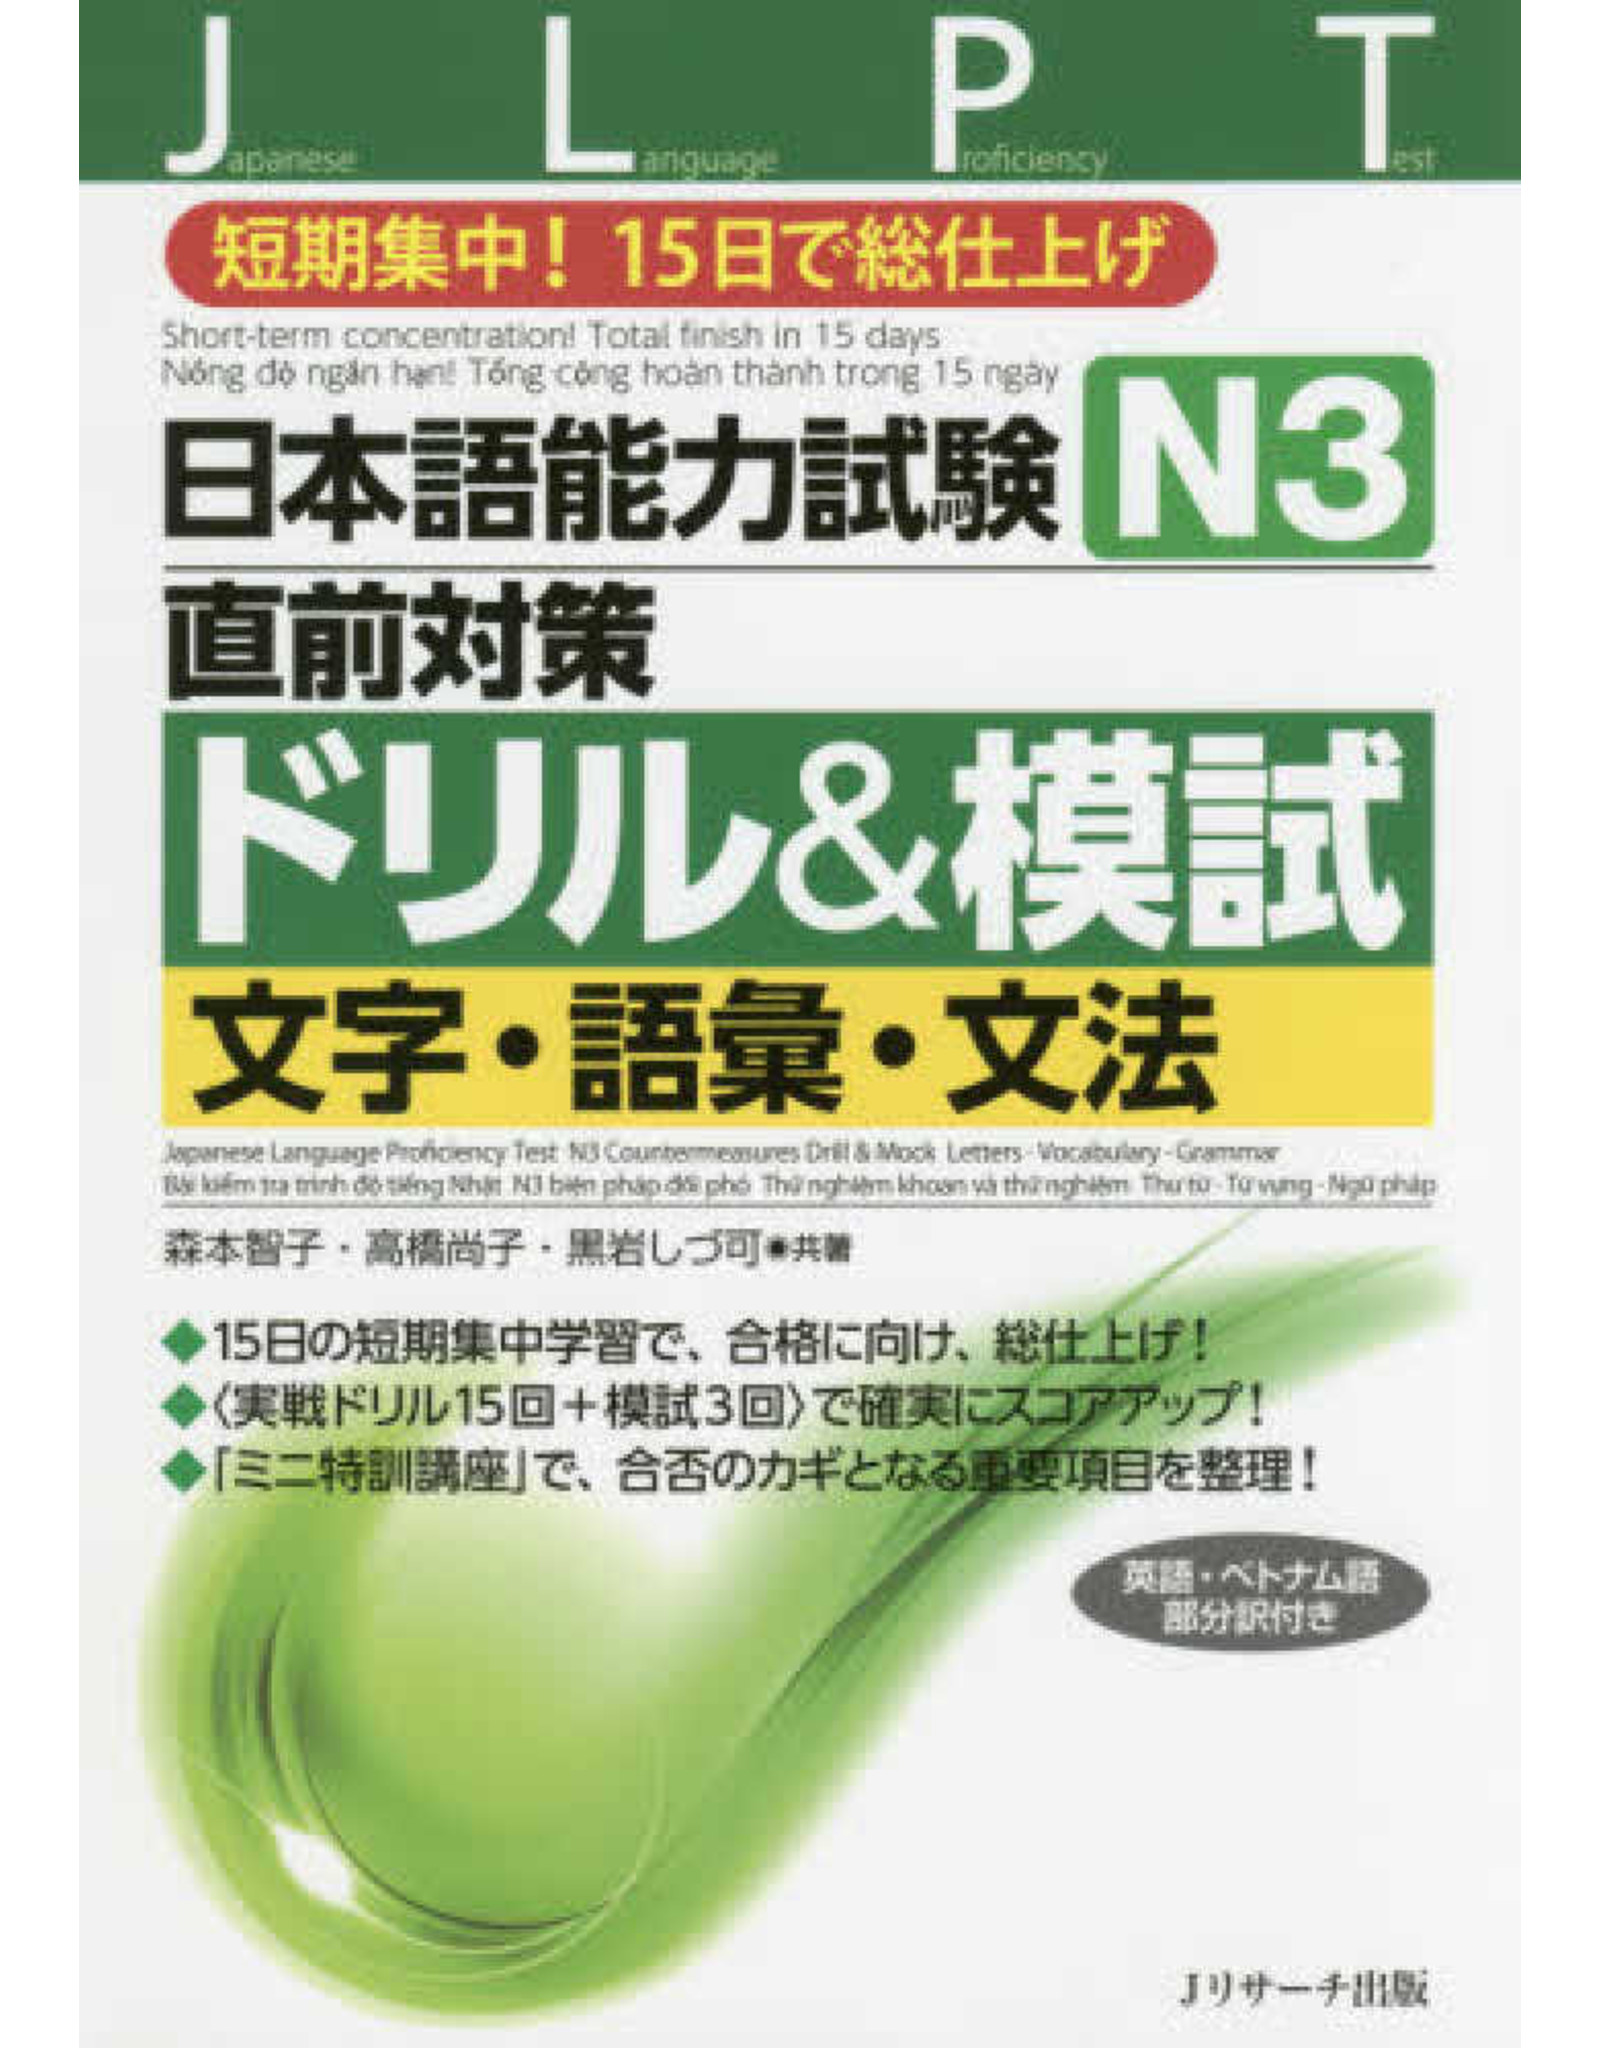 J RESEARCH JLPT N3 COUNTERMEASURES DRILL & MOCK LETTERS VOCABULARY GRAMMAR